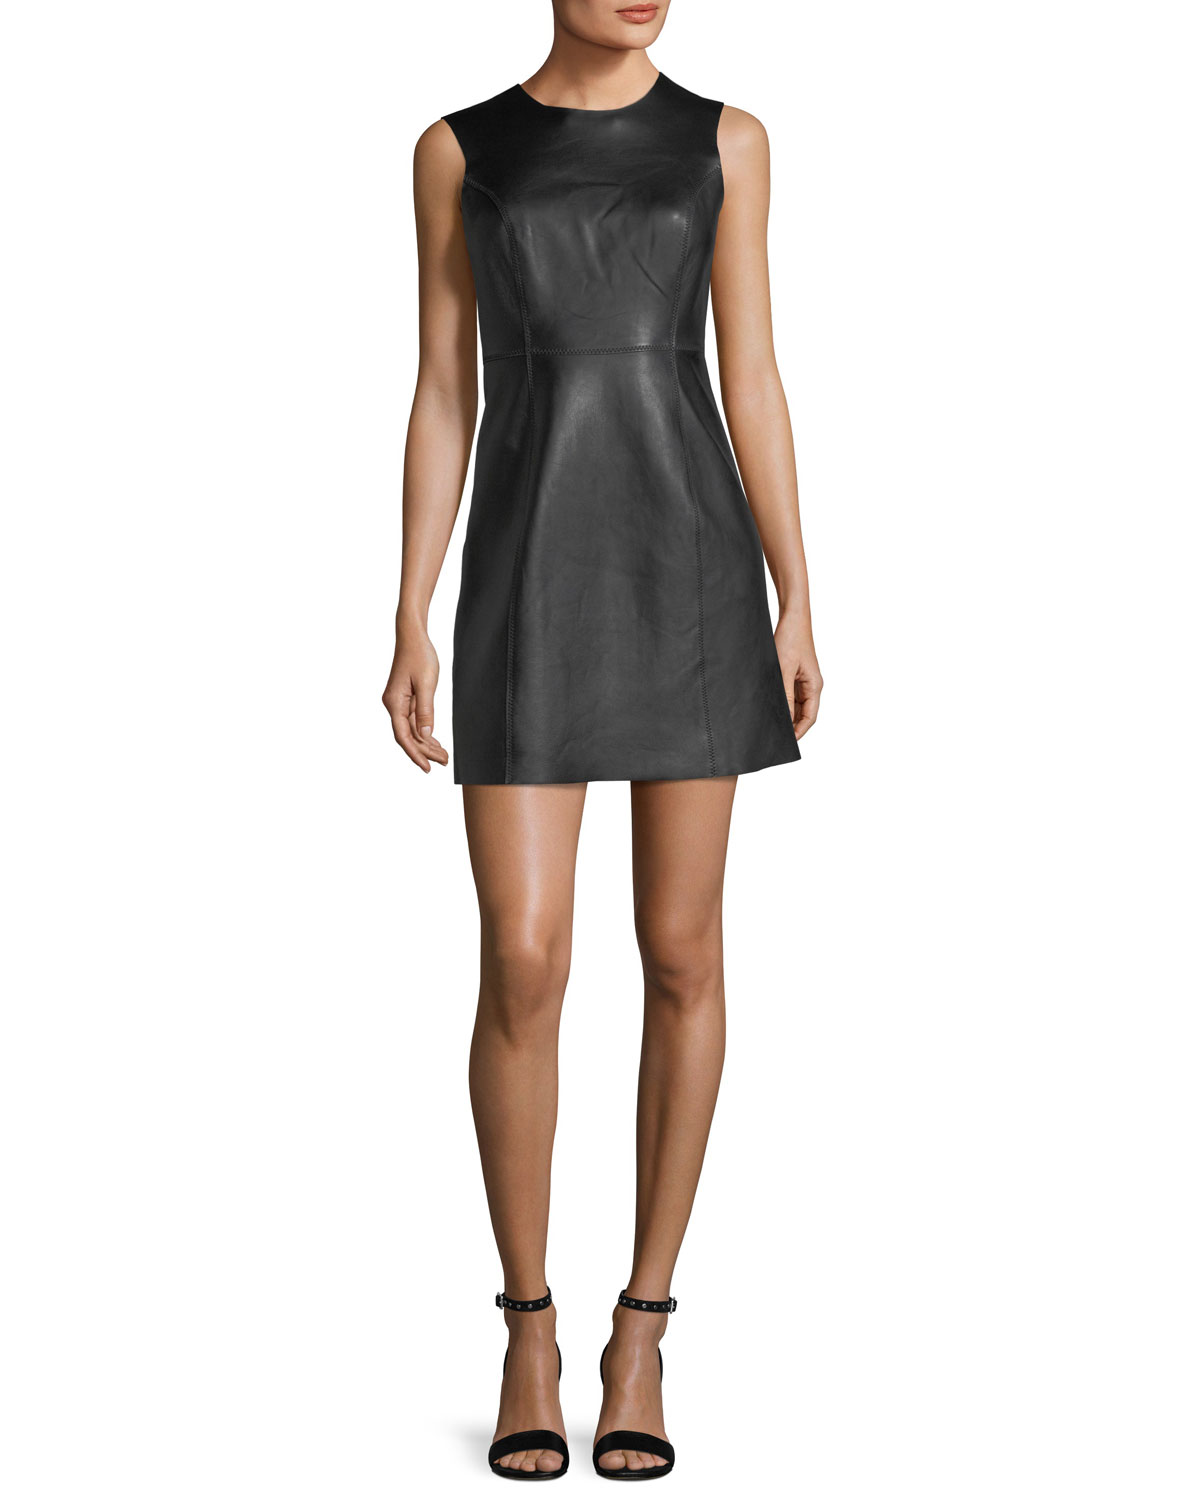 Loxley Sleeveless Leather Mini Dress